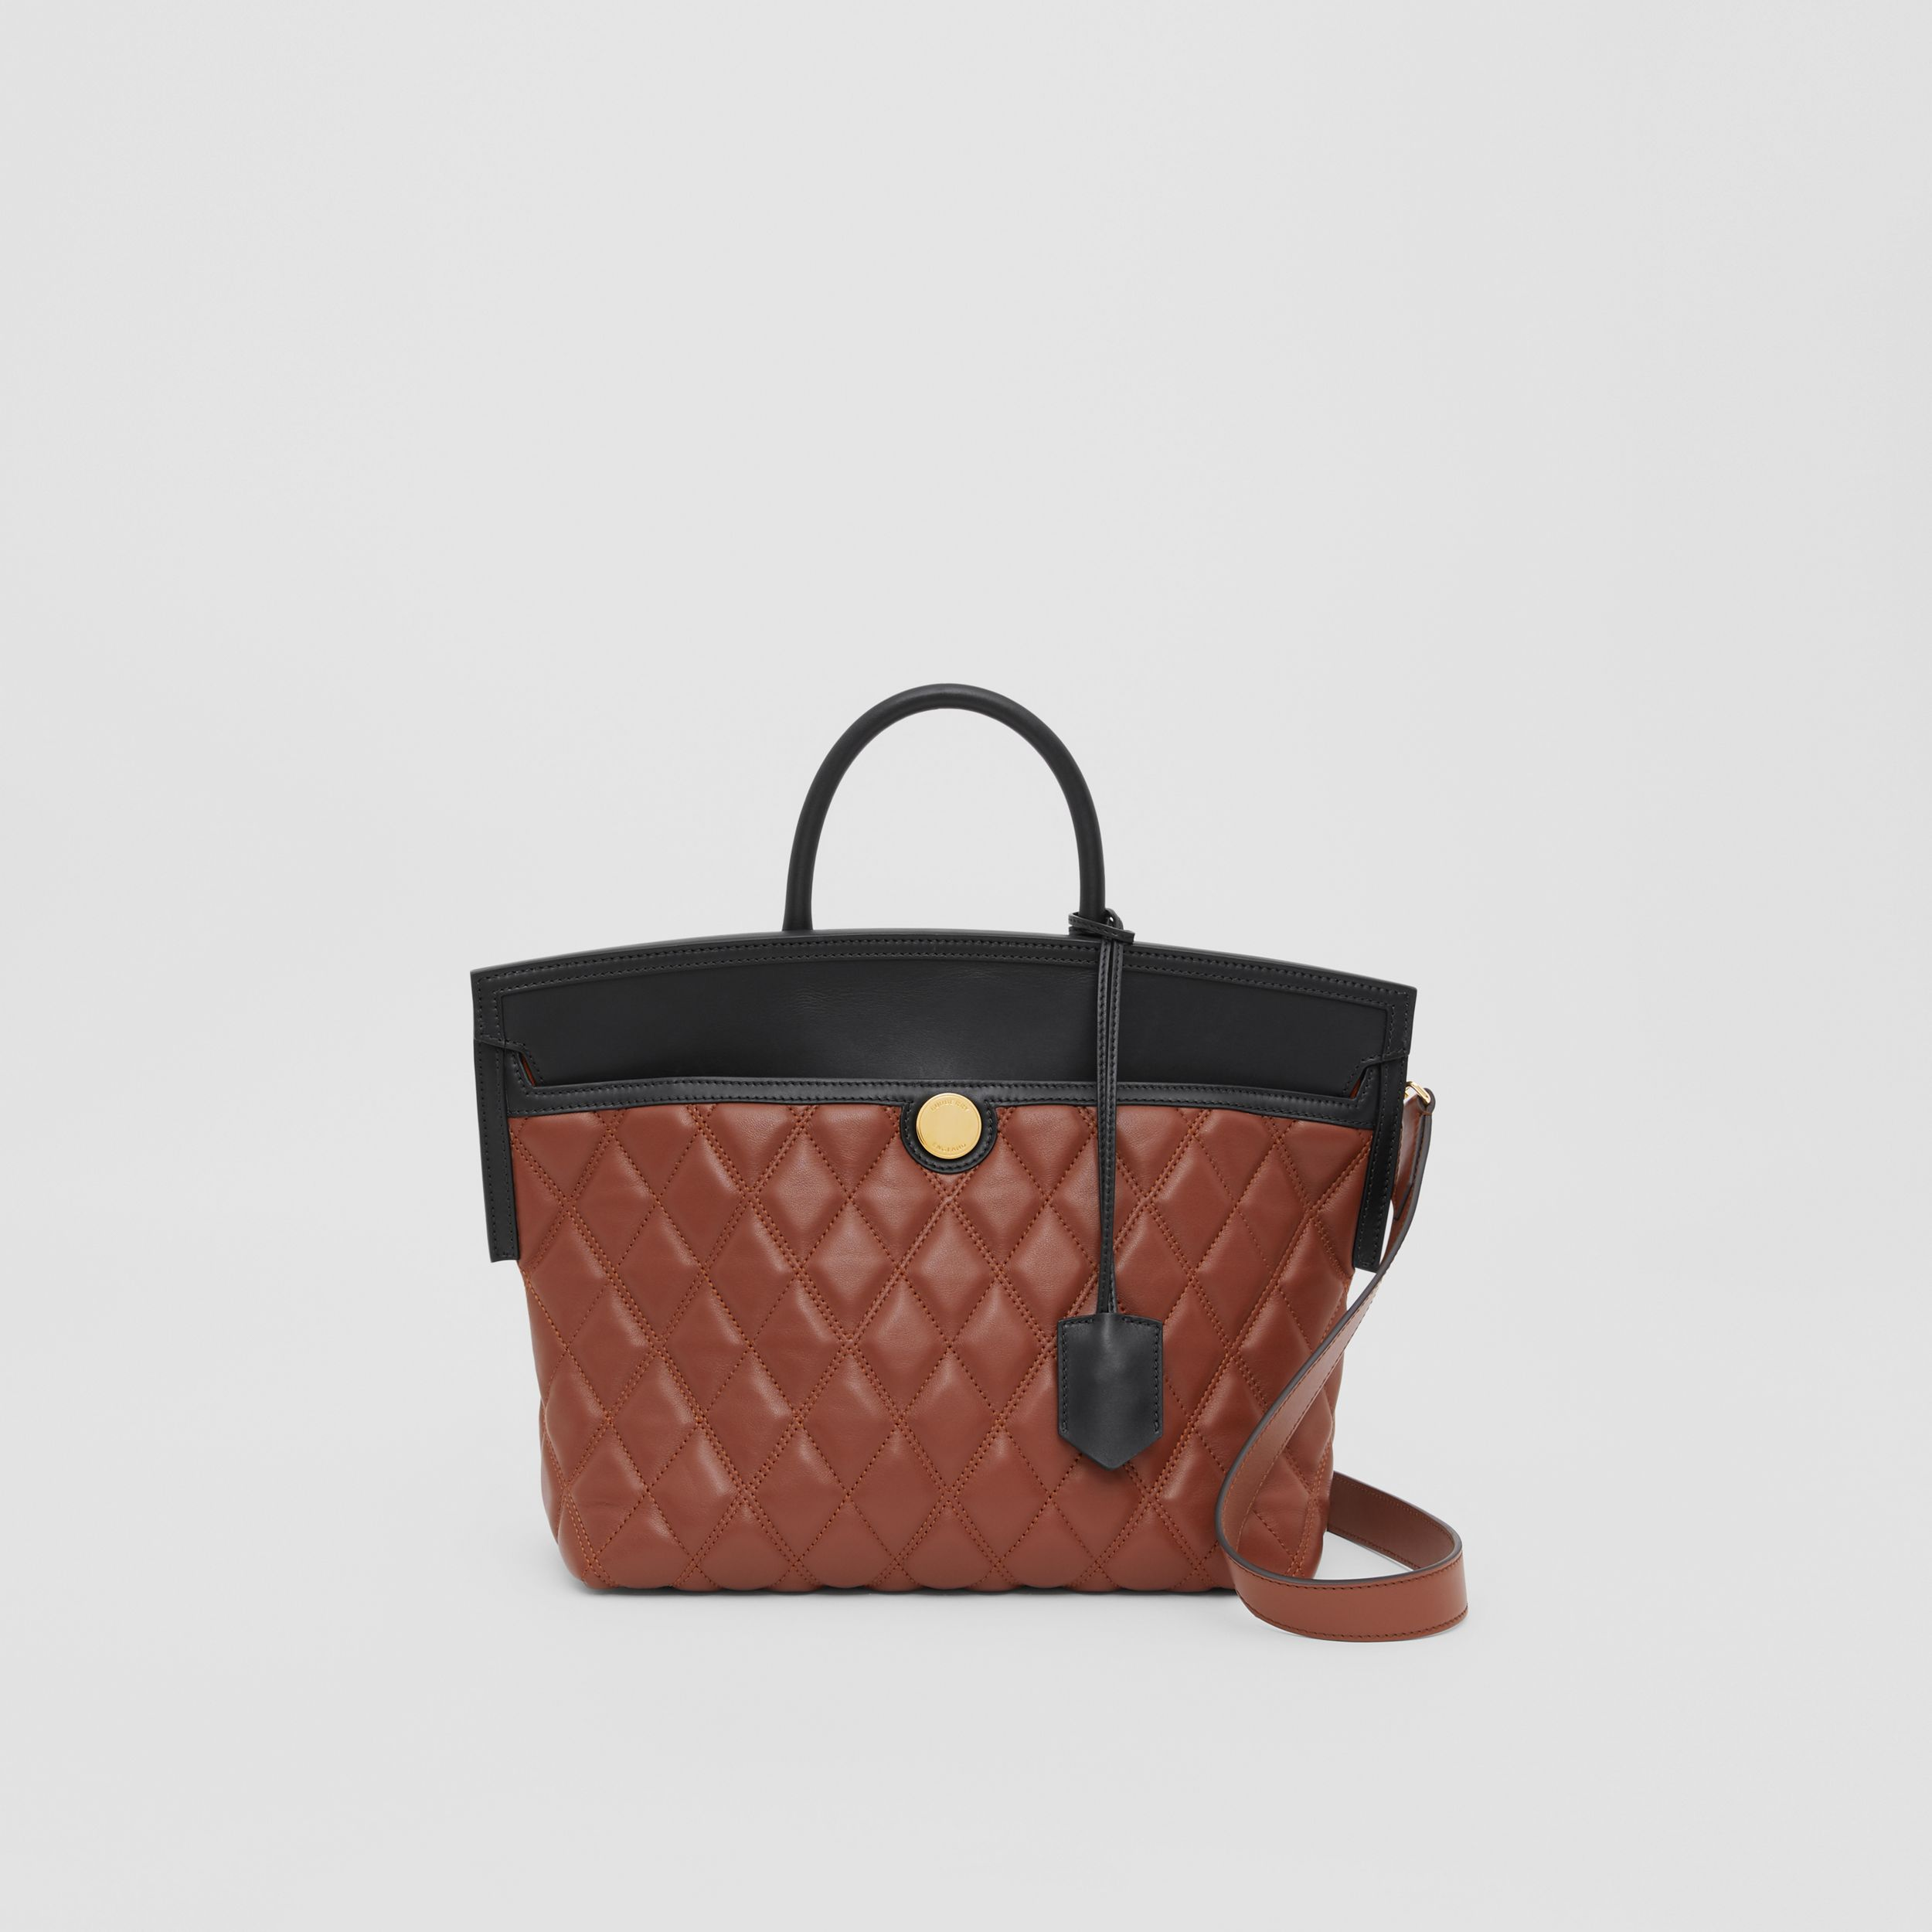 Small Quilted Lambskin Society Top Handle Bag in Tan - Women | Burberry - 1